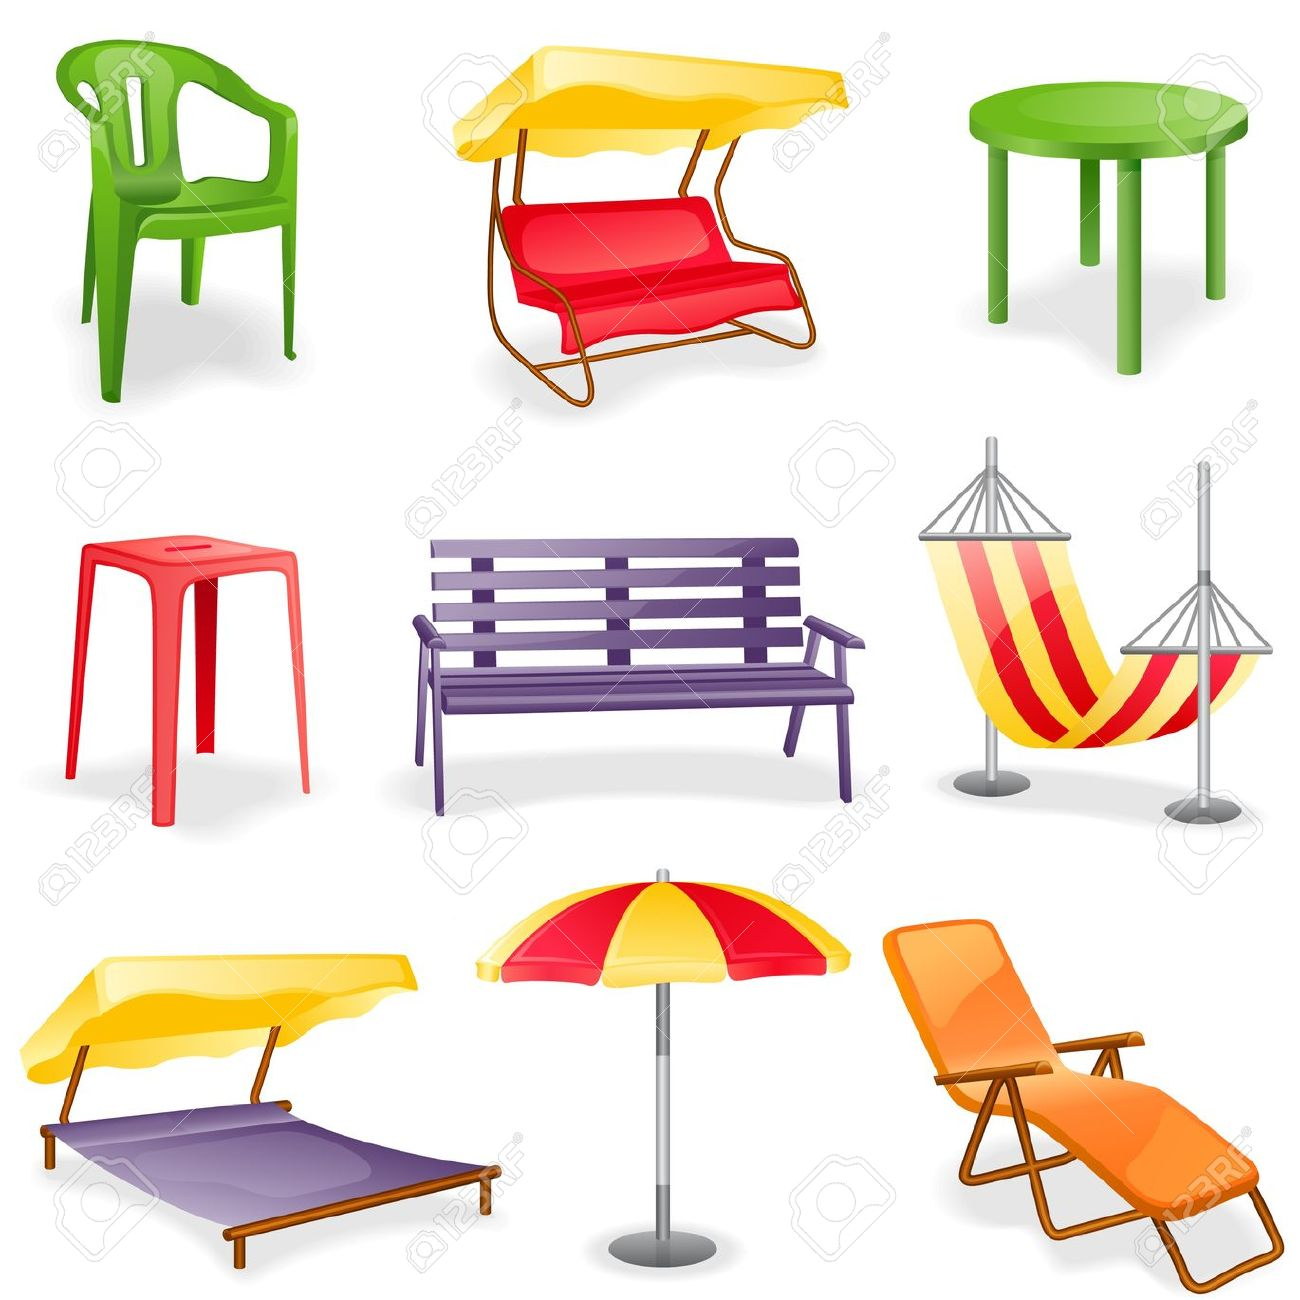 hight resolution of garden furniture icon set isolated on a white background royalty